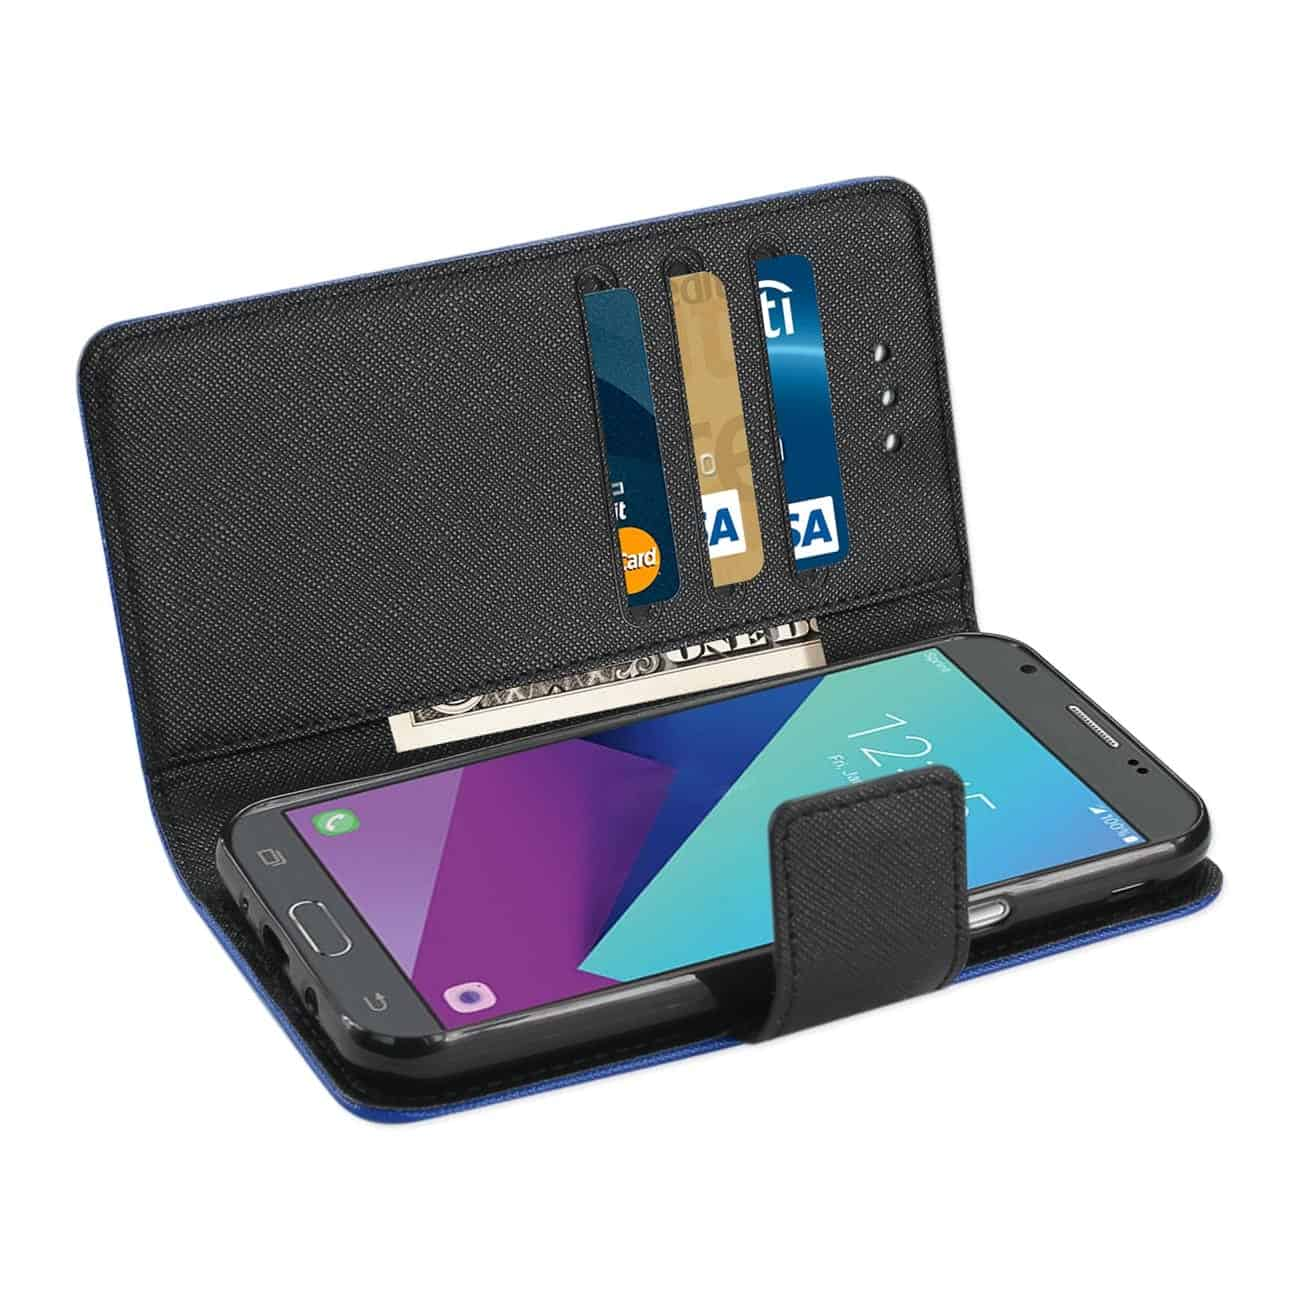 2017 SAMSUNG GALAXY J3 EMERGE 3-IN-1 WALLET CASE IN NAVY